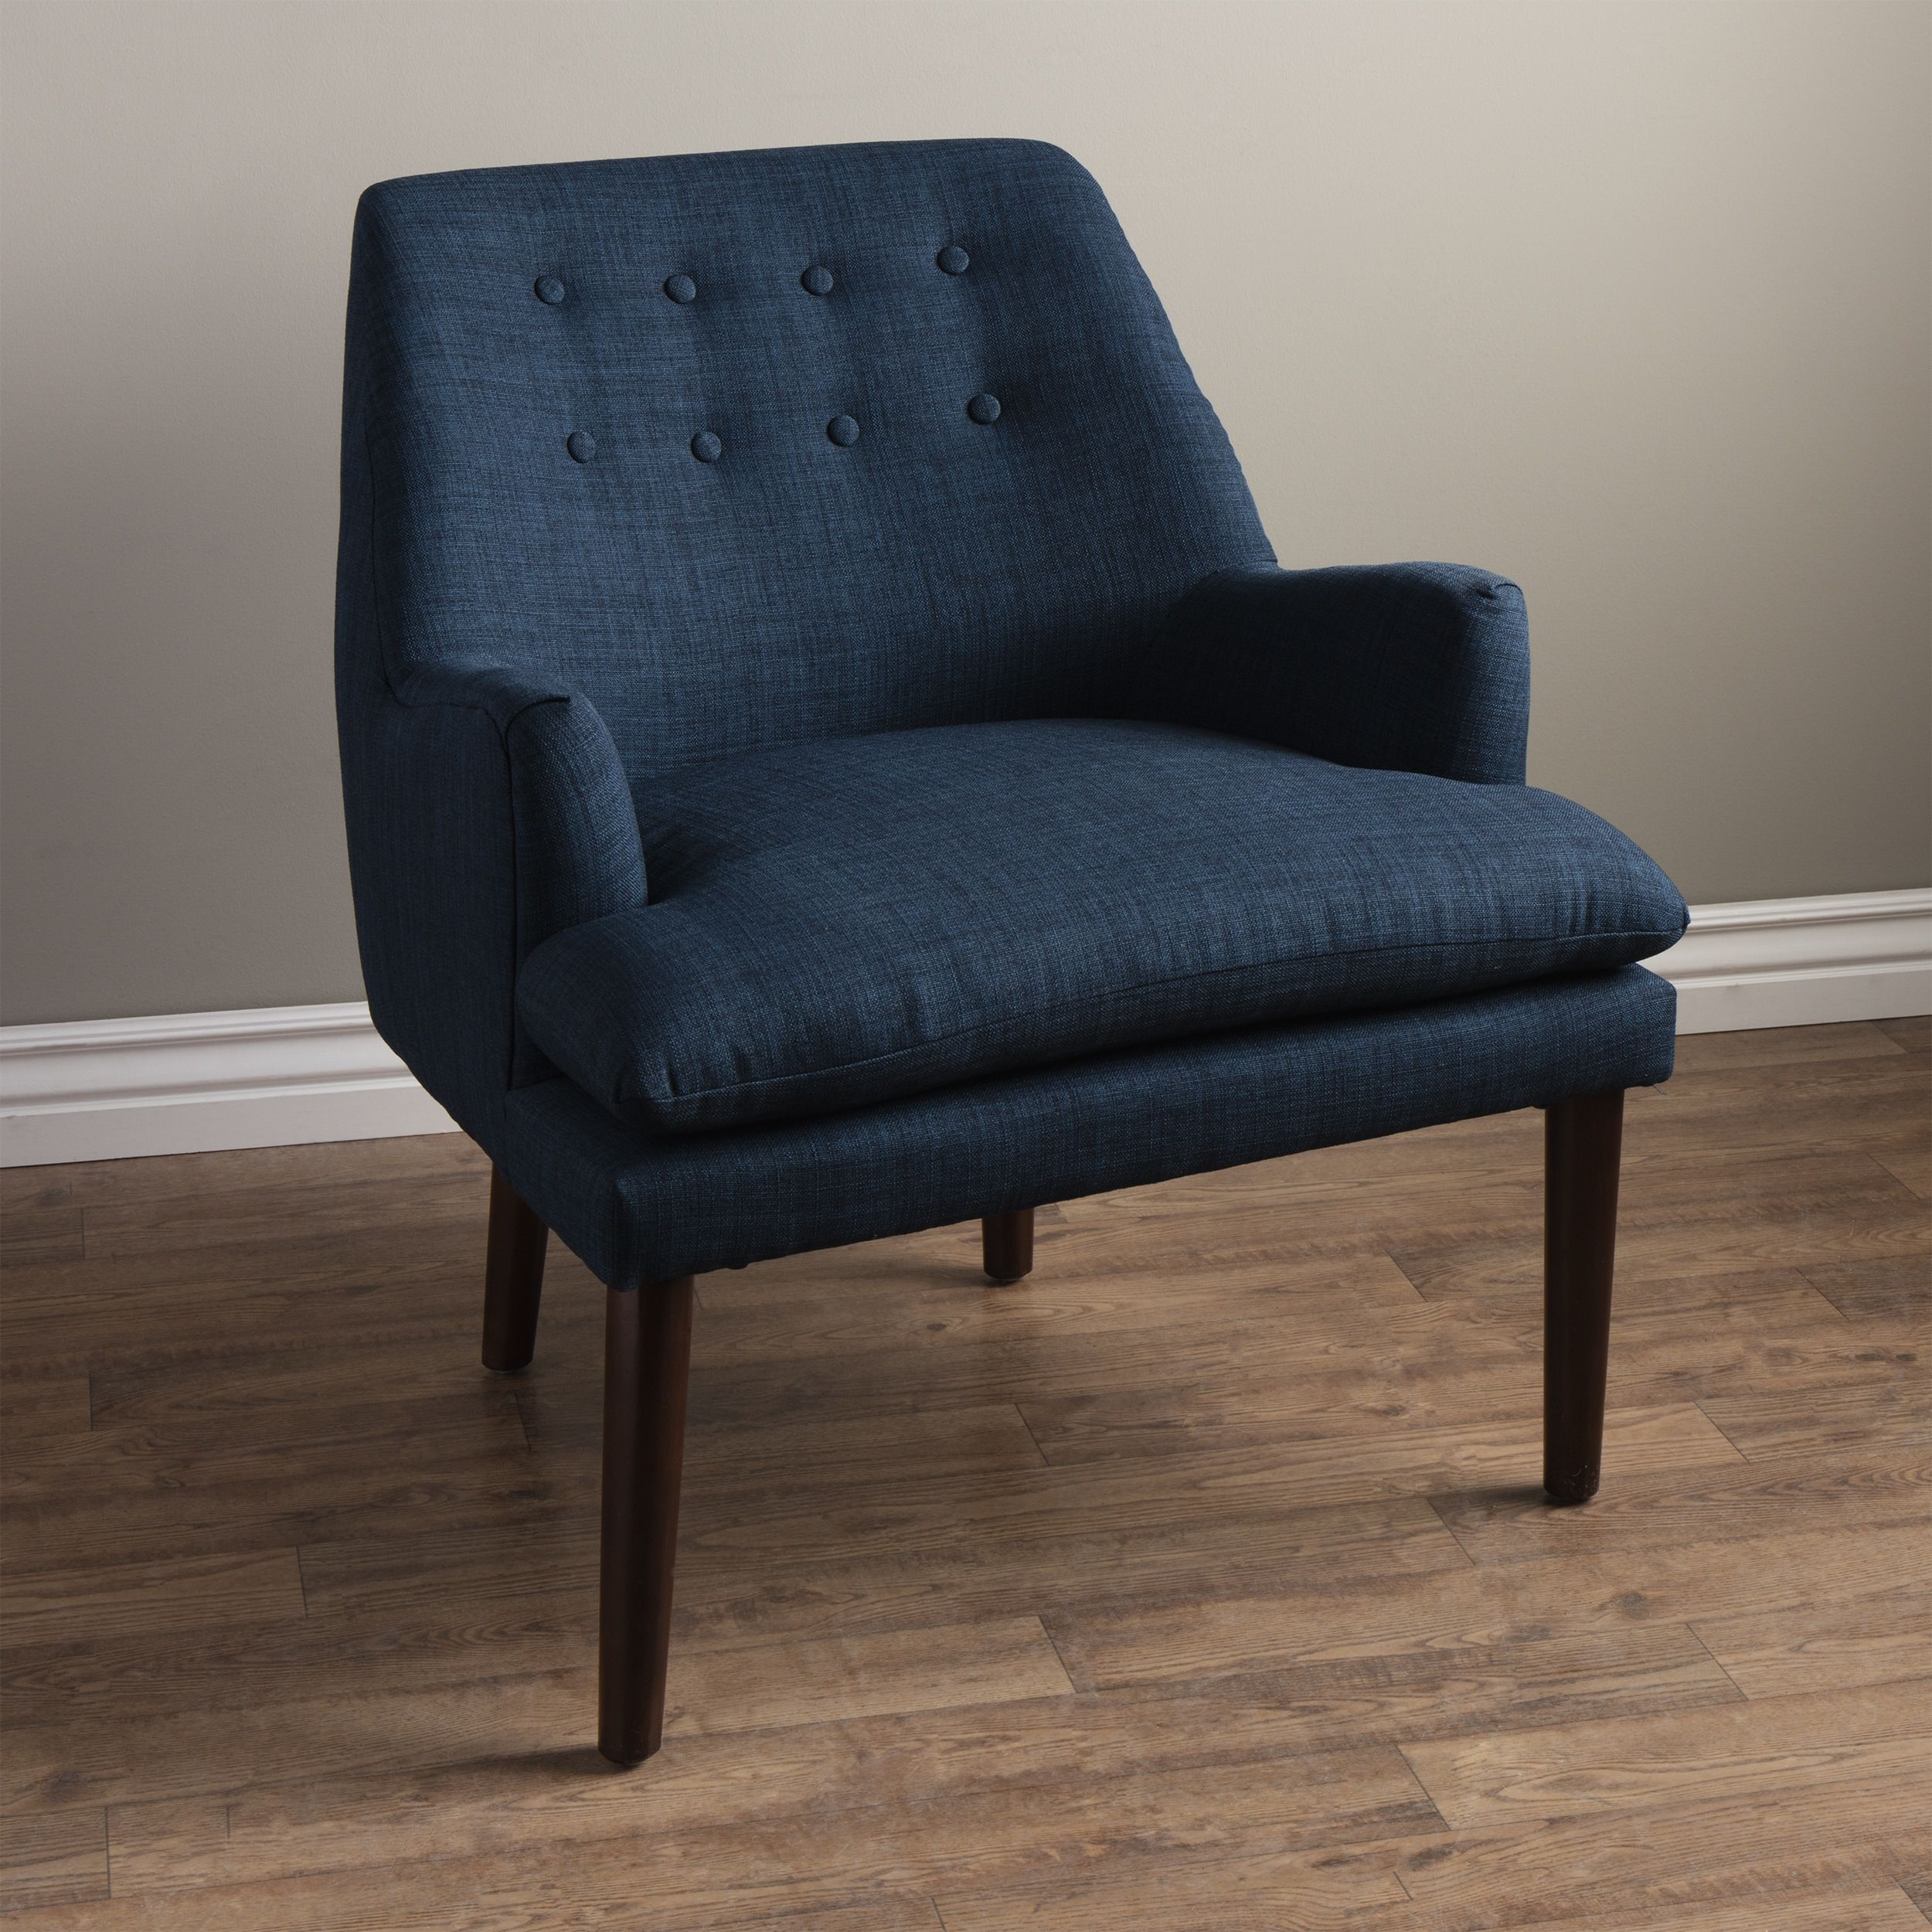 Taylor mid century navy blue tufted accent chair overstock com shopping the best deals on living room chairs